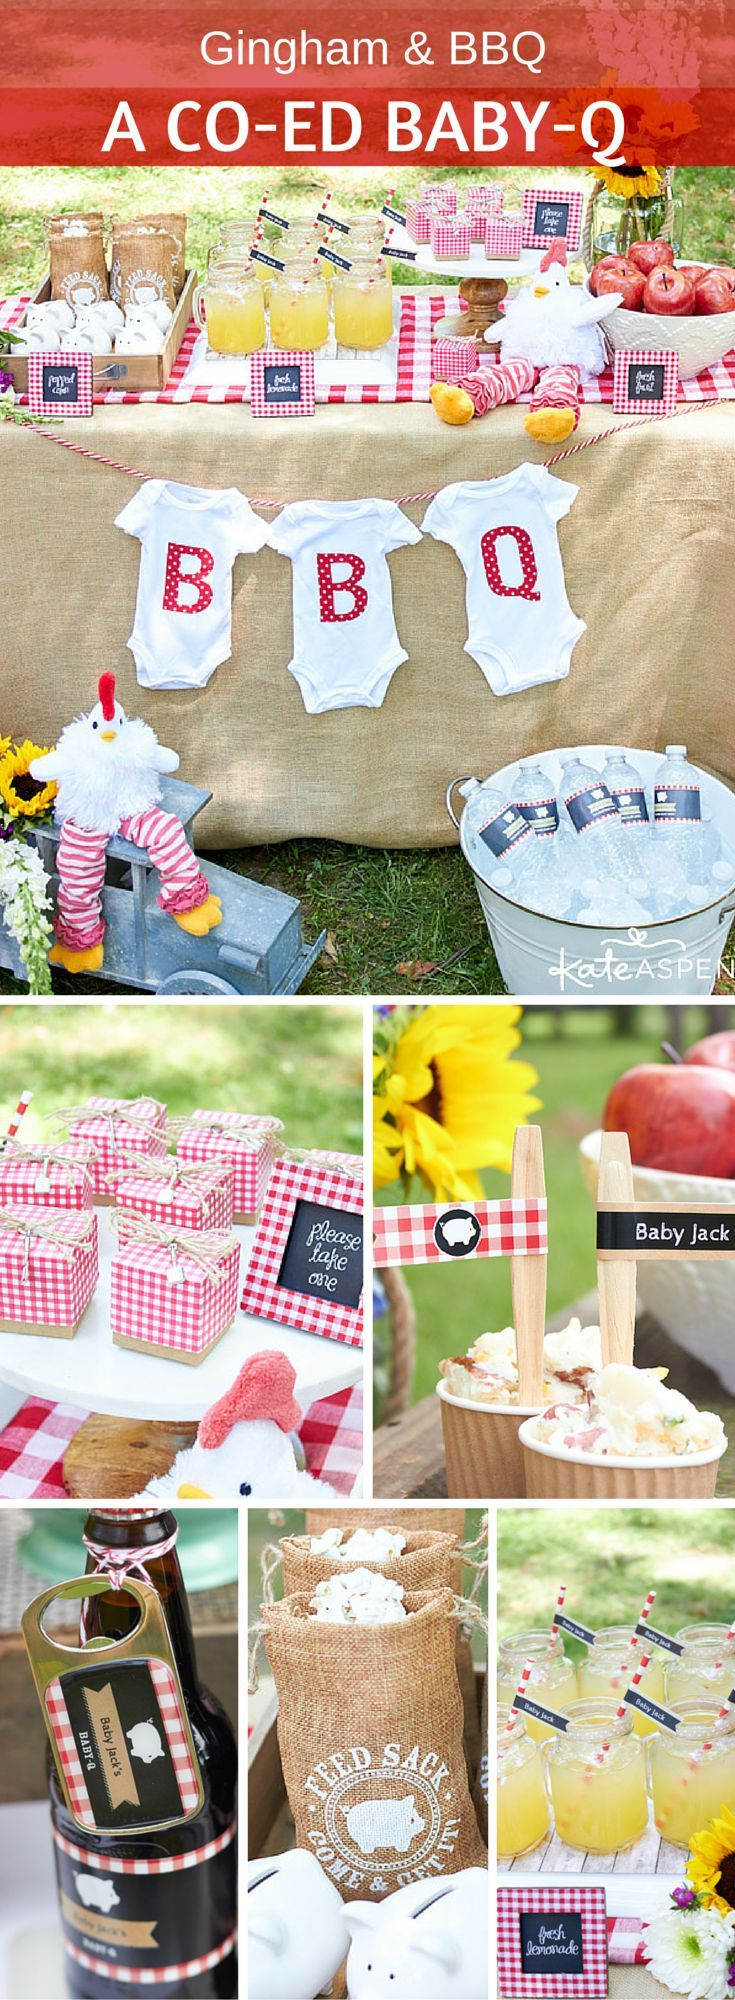 87 best baby-q barbecue baby shower images on Pinterest   Shower ...